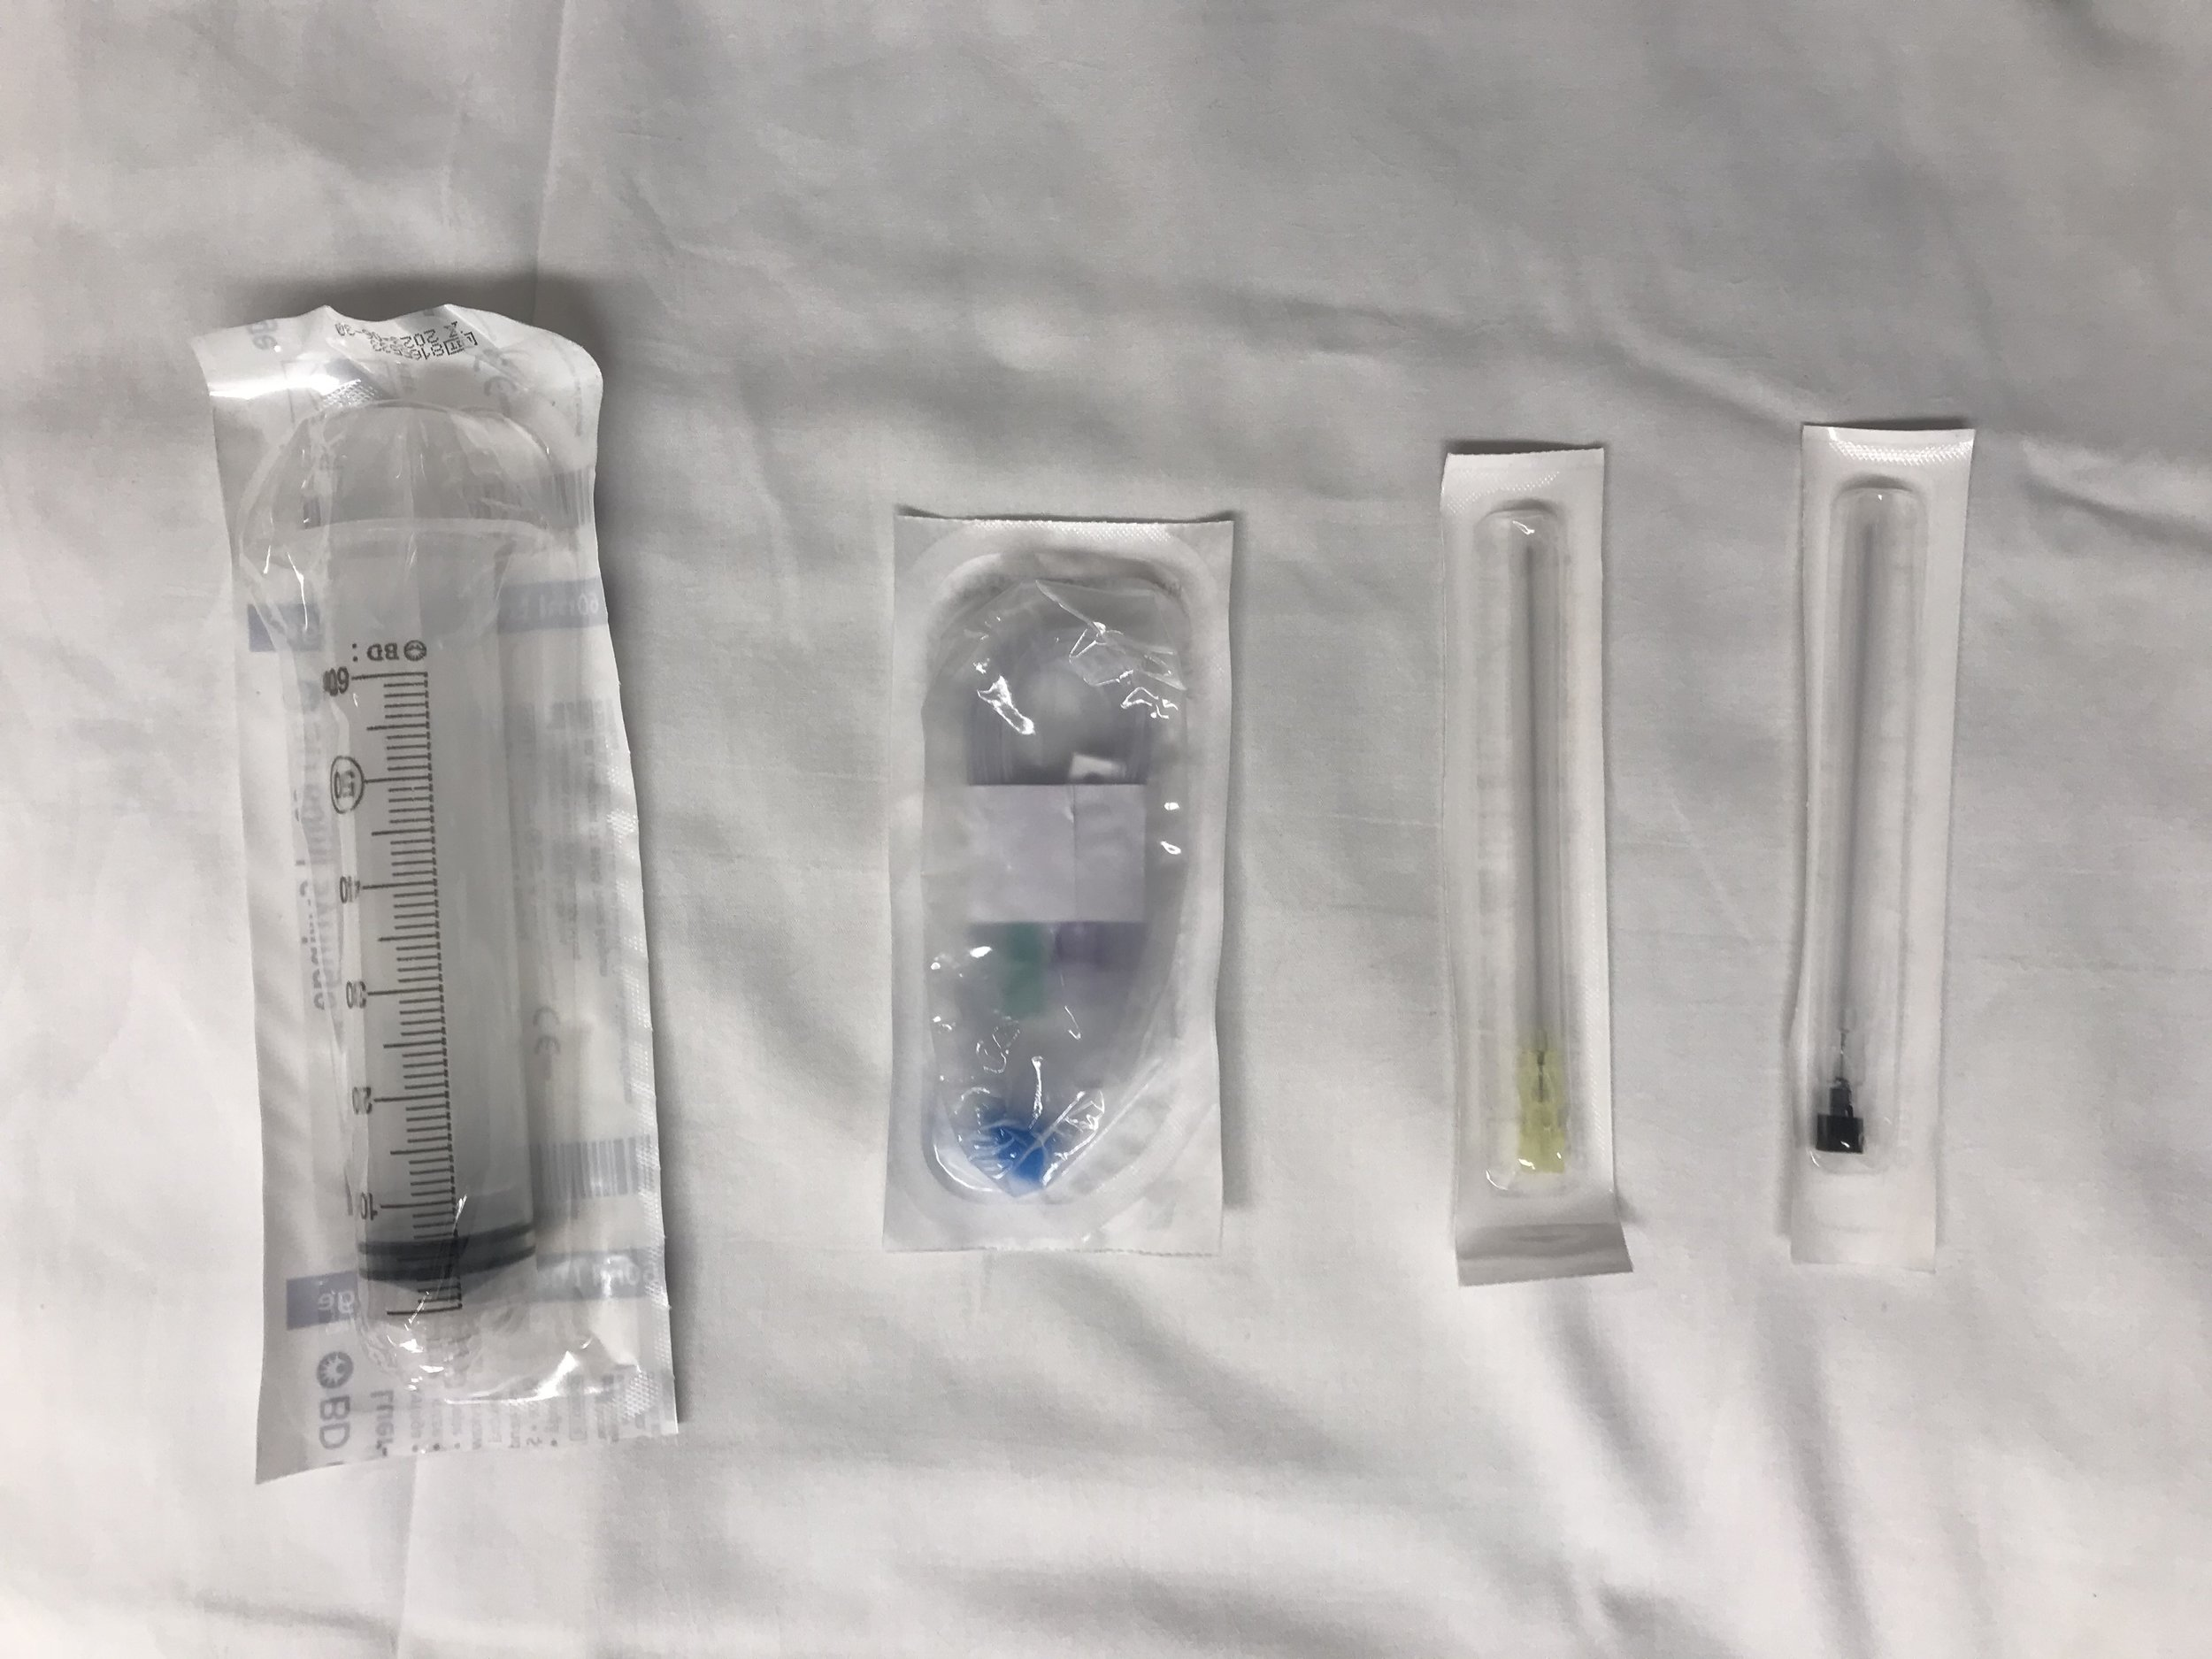 Obtain a 60cc syringe, extension tubing and a 20g spinal.